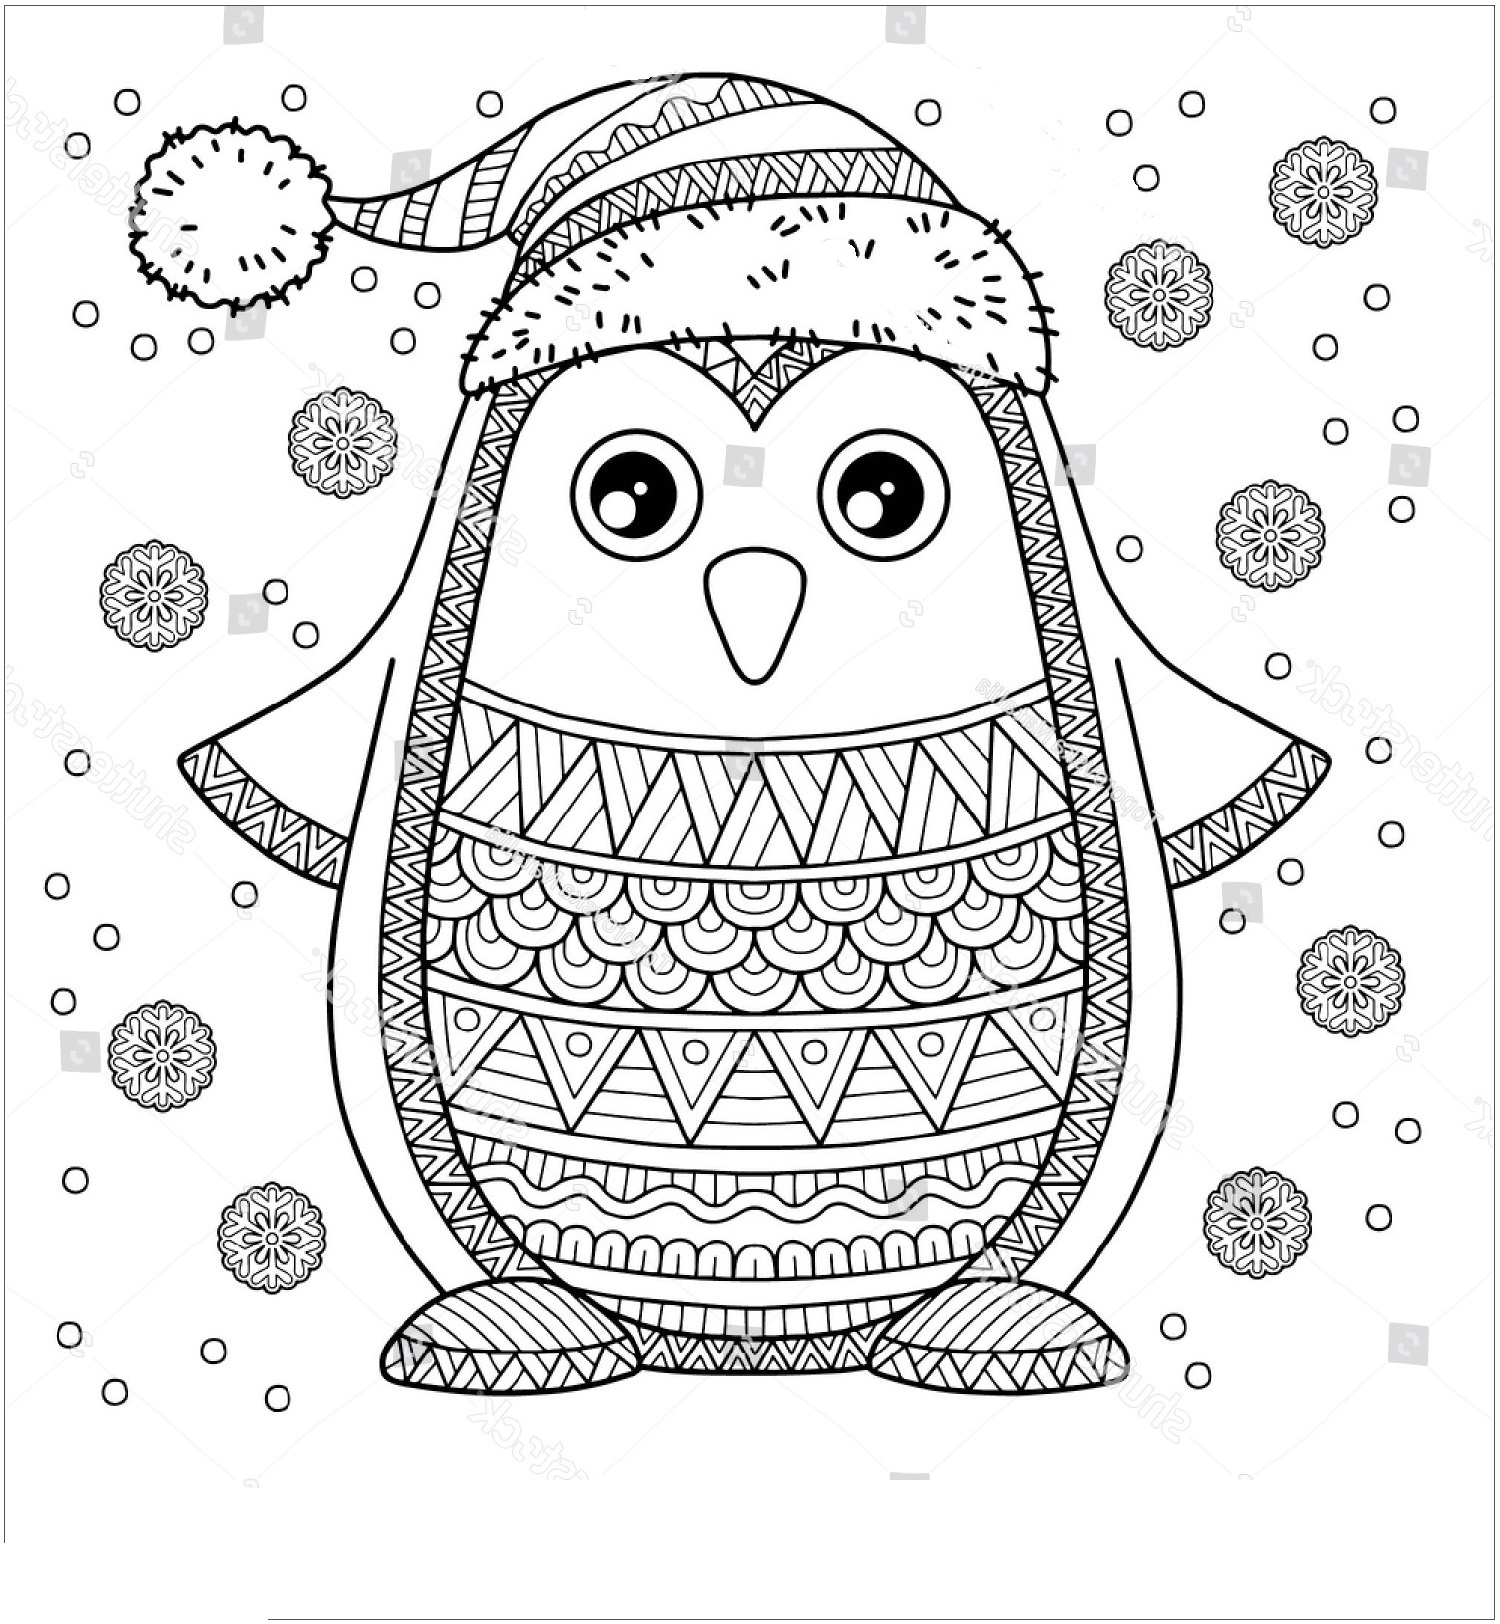 picture of penguin to color printable cute penguin coloring pages 101 coloring of picture to color penguin